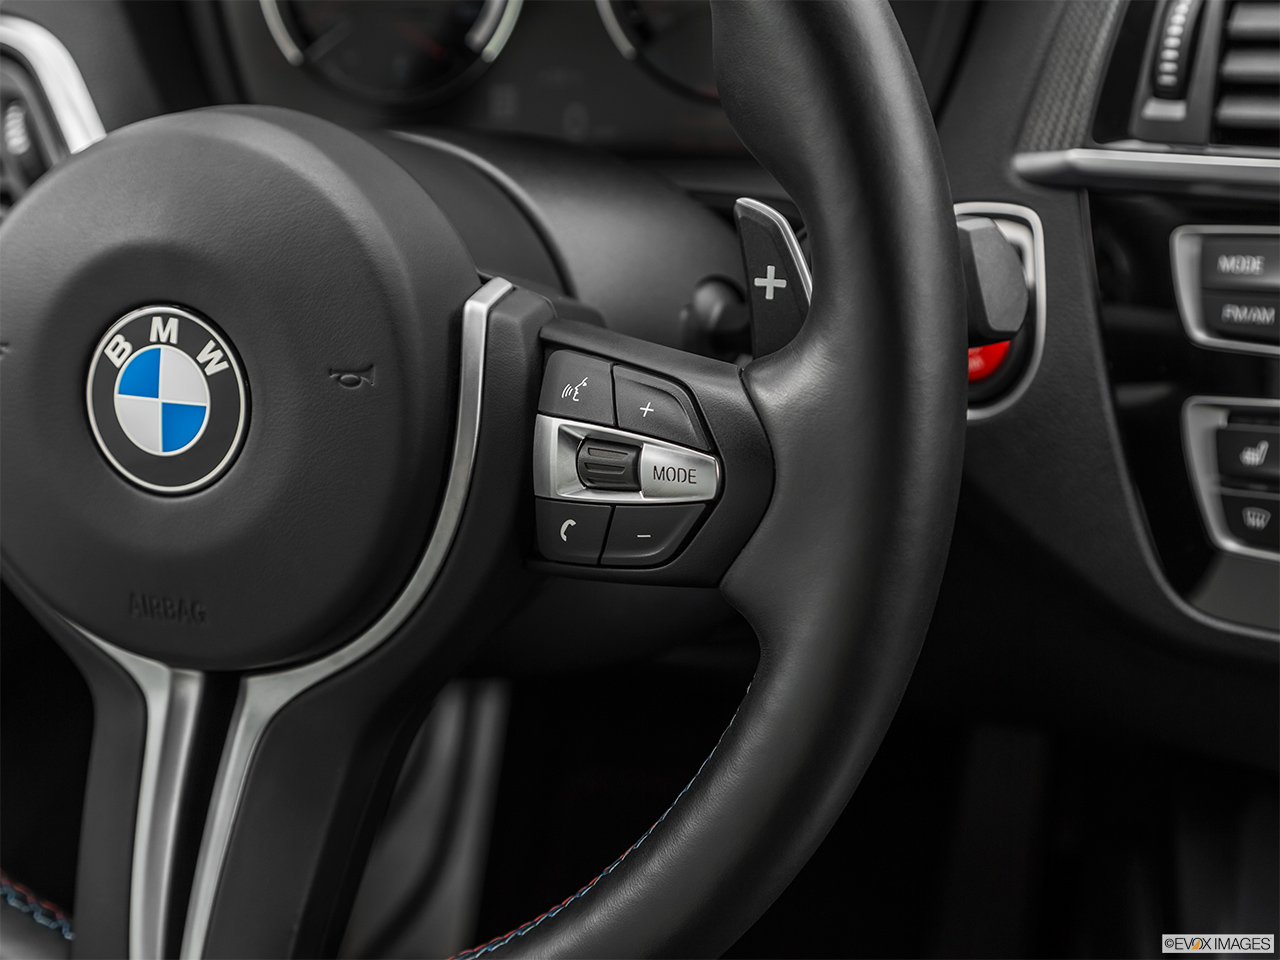 2020 BMW M2 Competition Steering Wheel Controls (Right Side)